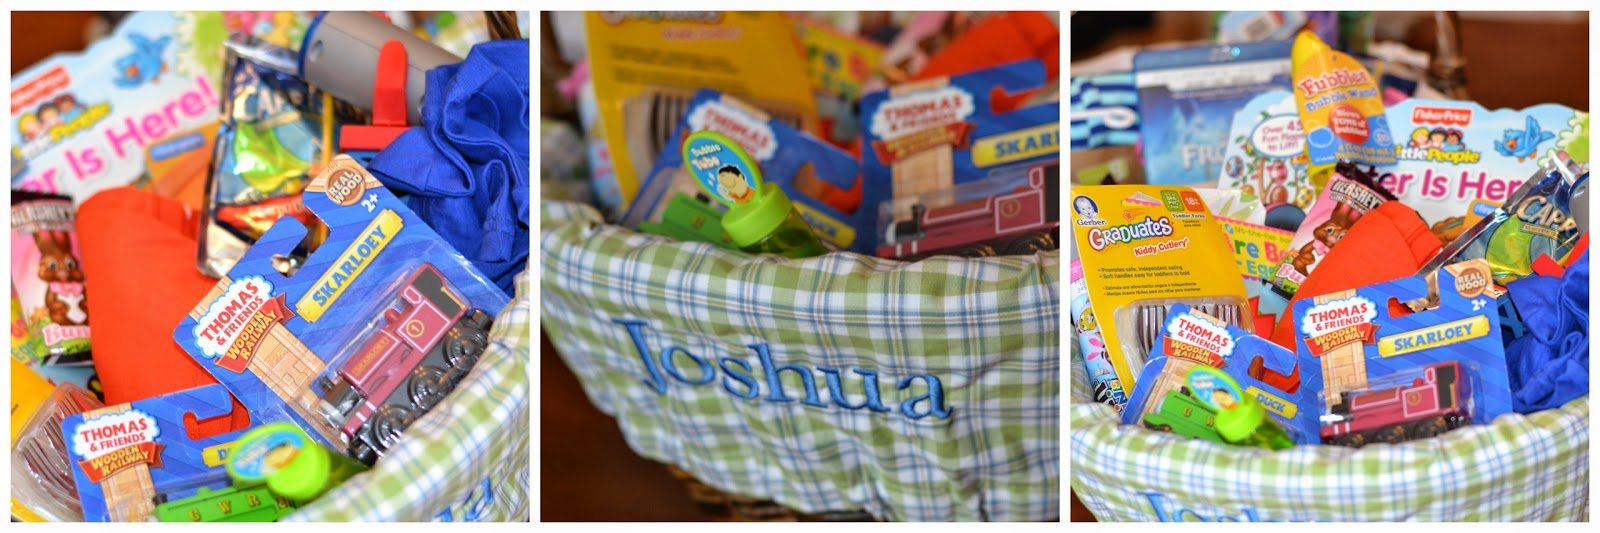 Easter basket ideas for any kid happily a housewife we have the sabrina basket and i did it in natural because i figured white would show wear over the years there are so many adorable liners to go with them negle